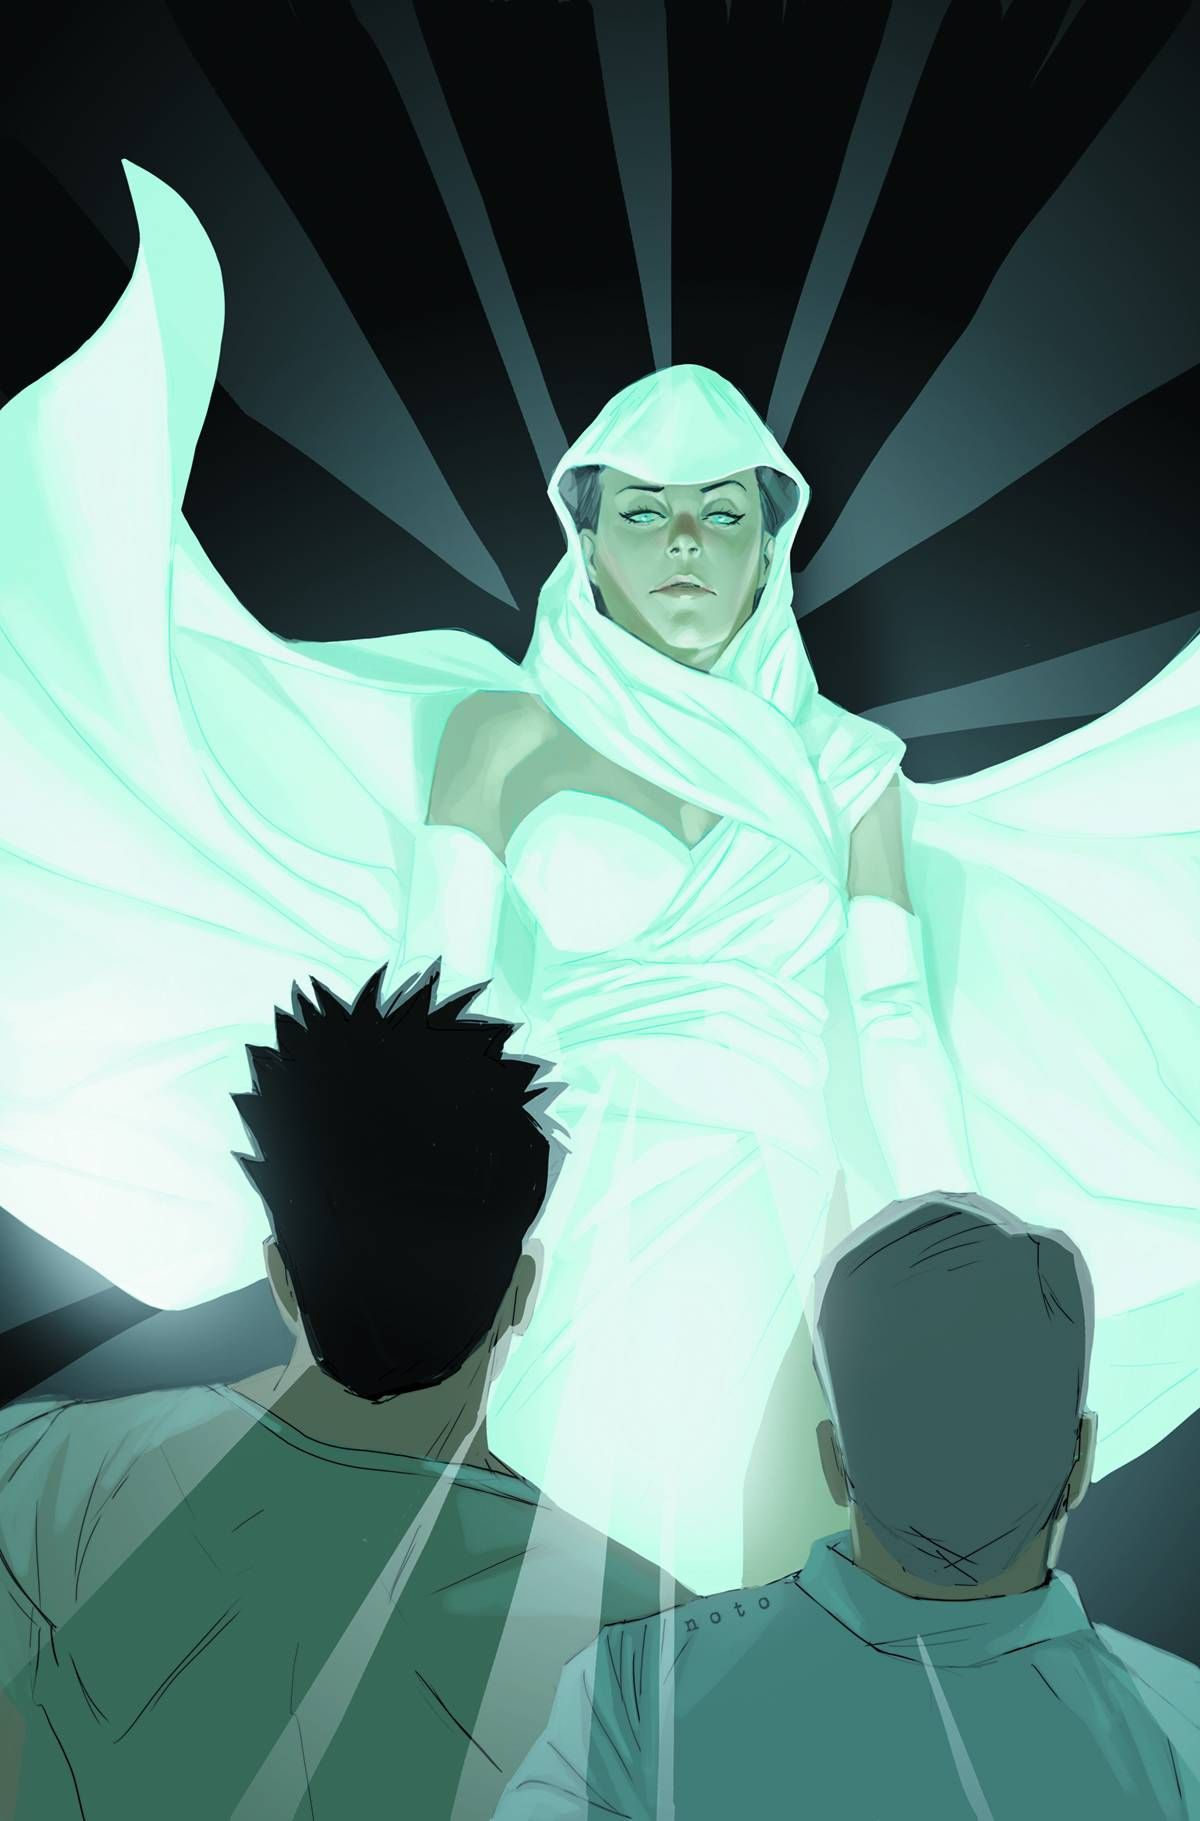 Ghost by Phil Noto